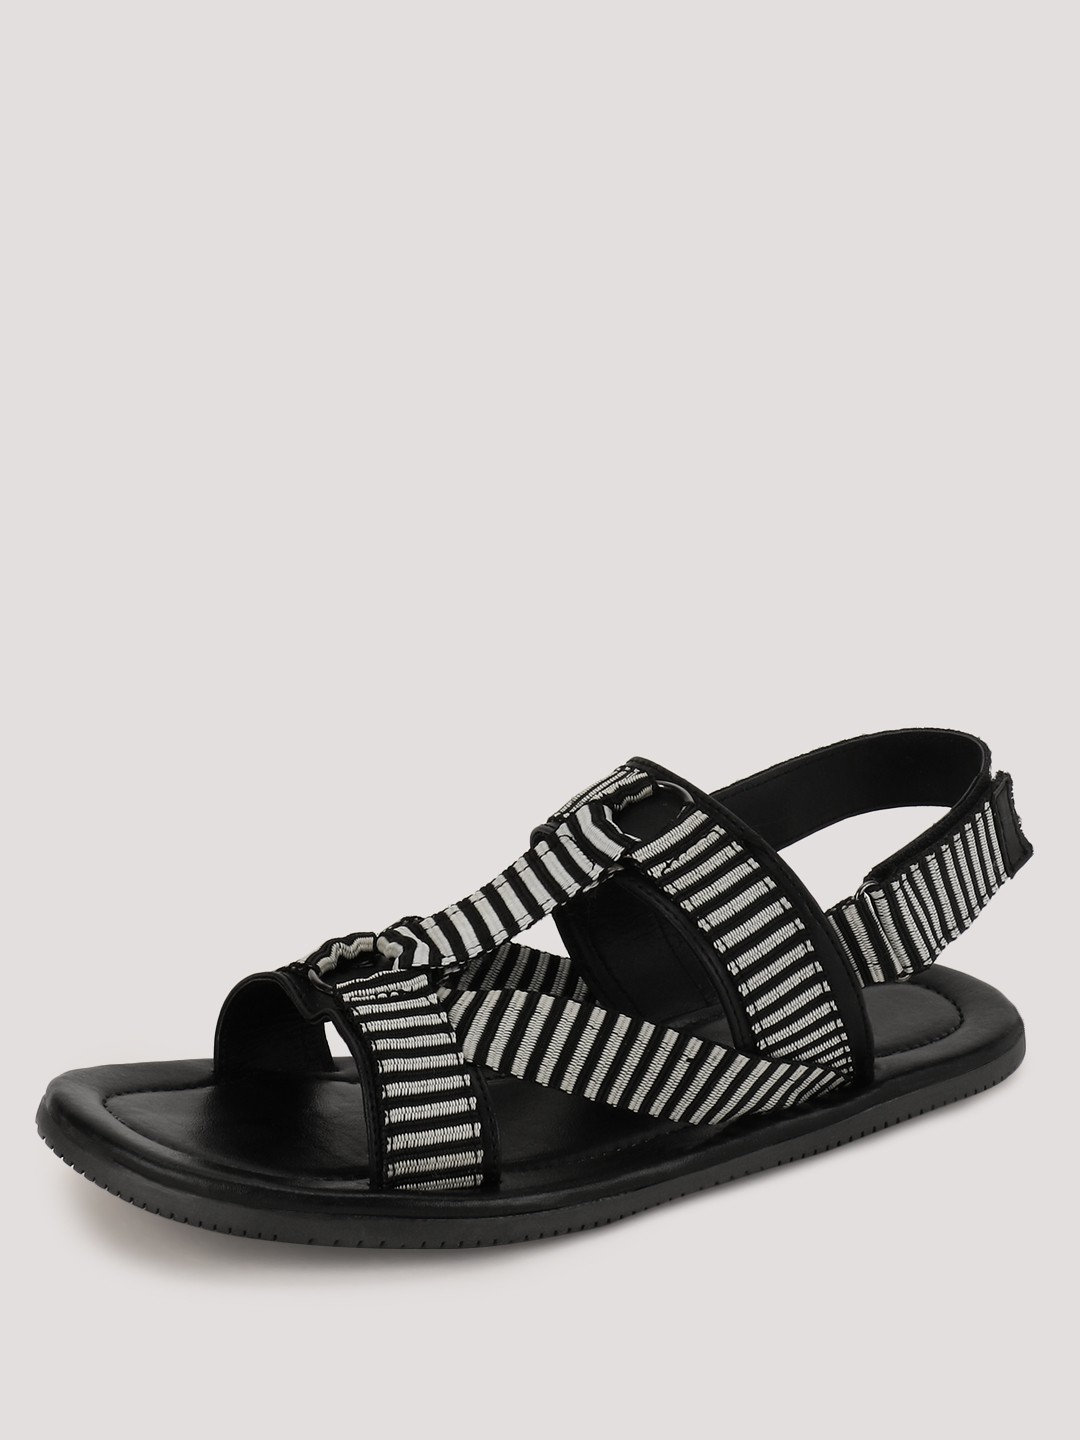 Tread Black Sandals With Stripped Detailing On Strap 1